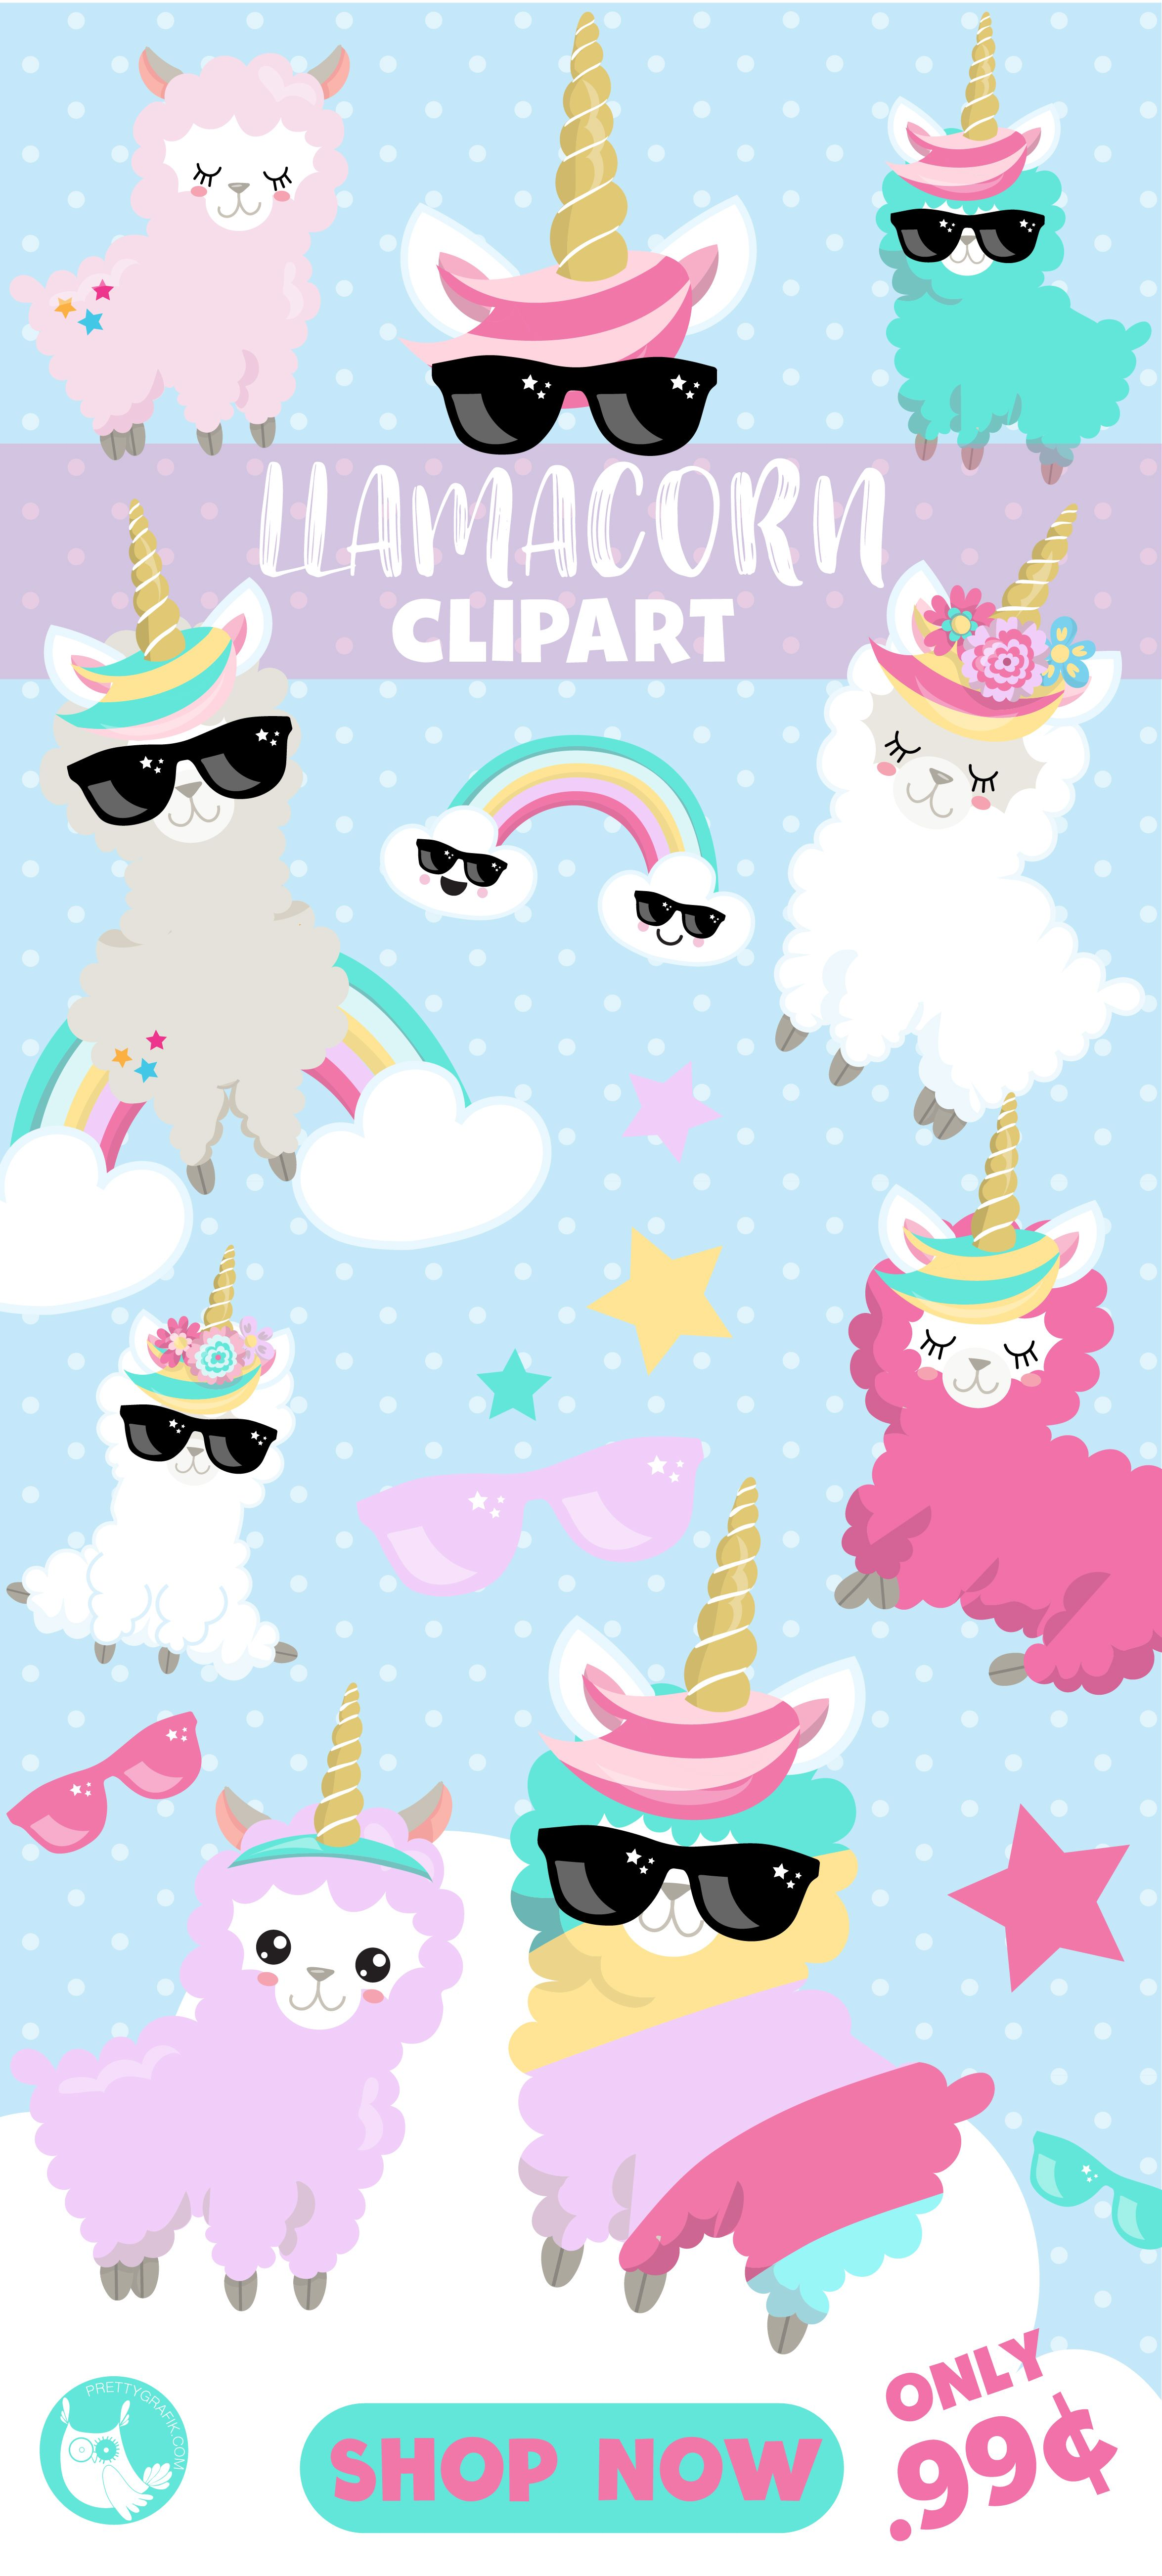 hight resolution of llamacorn llama clipart are only 99 and are great to use as party decorations for a llama themed birthday party